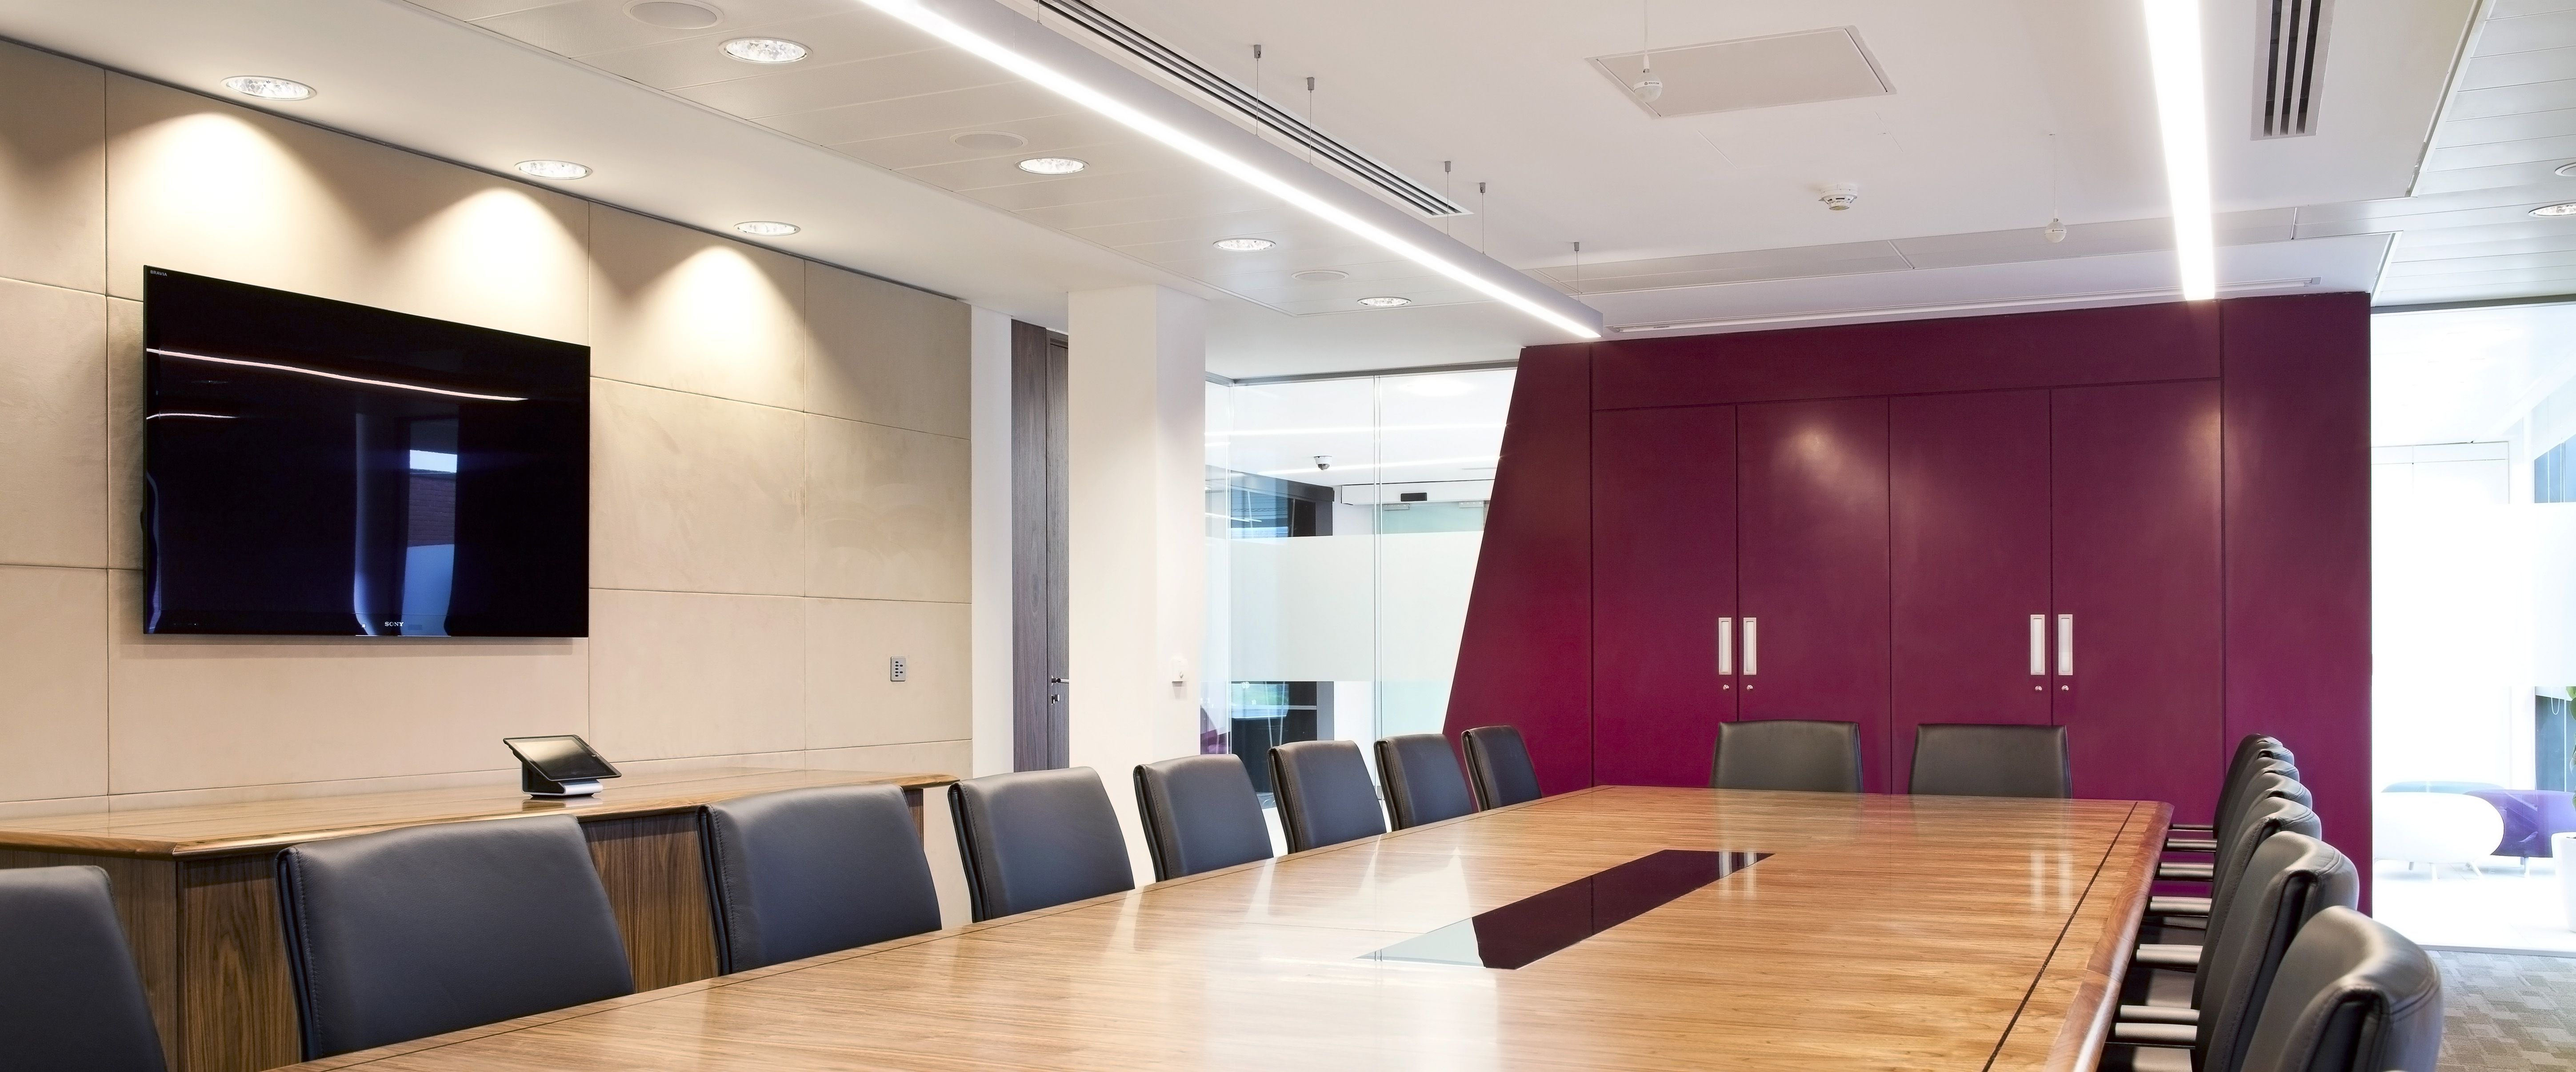 Interior Designs,Remarkable Office Meeting Room With Long Rectangular  Meeting Table On Combined Luxury Black